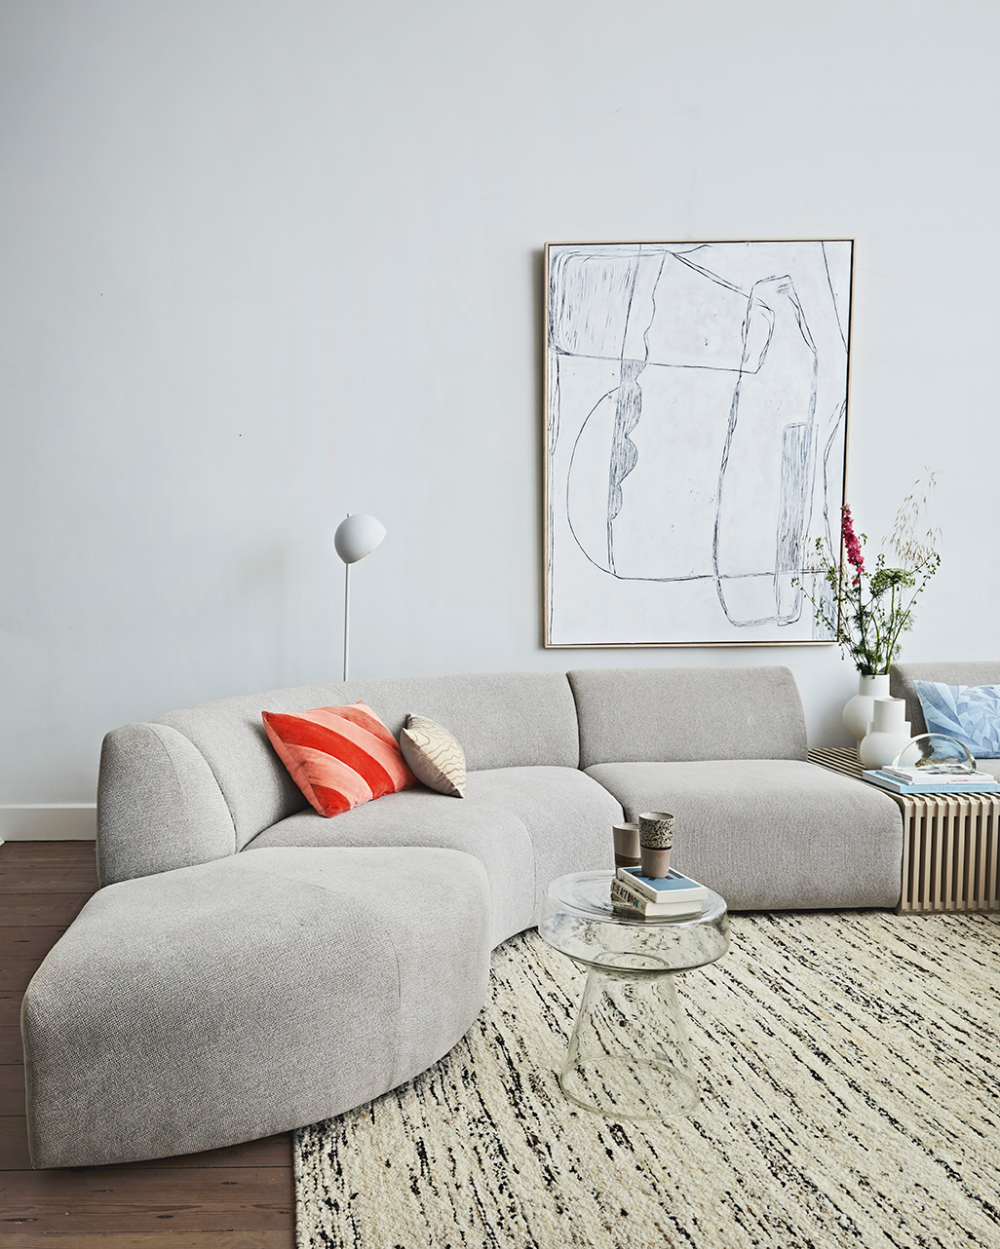 jax couch: element angle, sneak, light grey